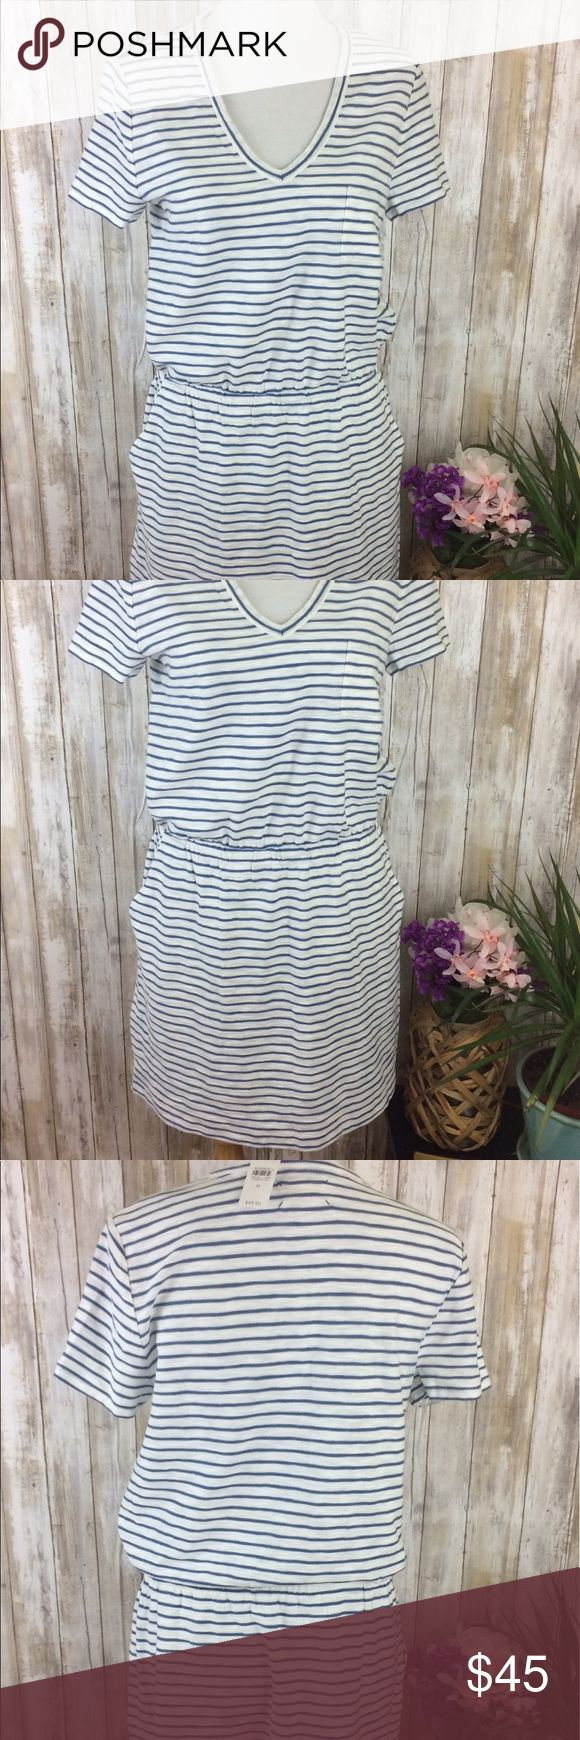 NWT Lou and gray t-shirt dress white blue striped Brand new with tags! Lou and Gray 100% cotton t-shirt dress. Short sleeve with elastic at the waist and pockets! V-neck and knee length. Nautical vibes. Size medium. Lou & Grey Dresses